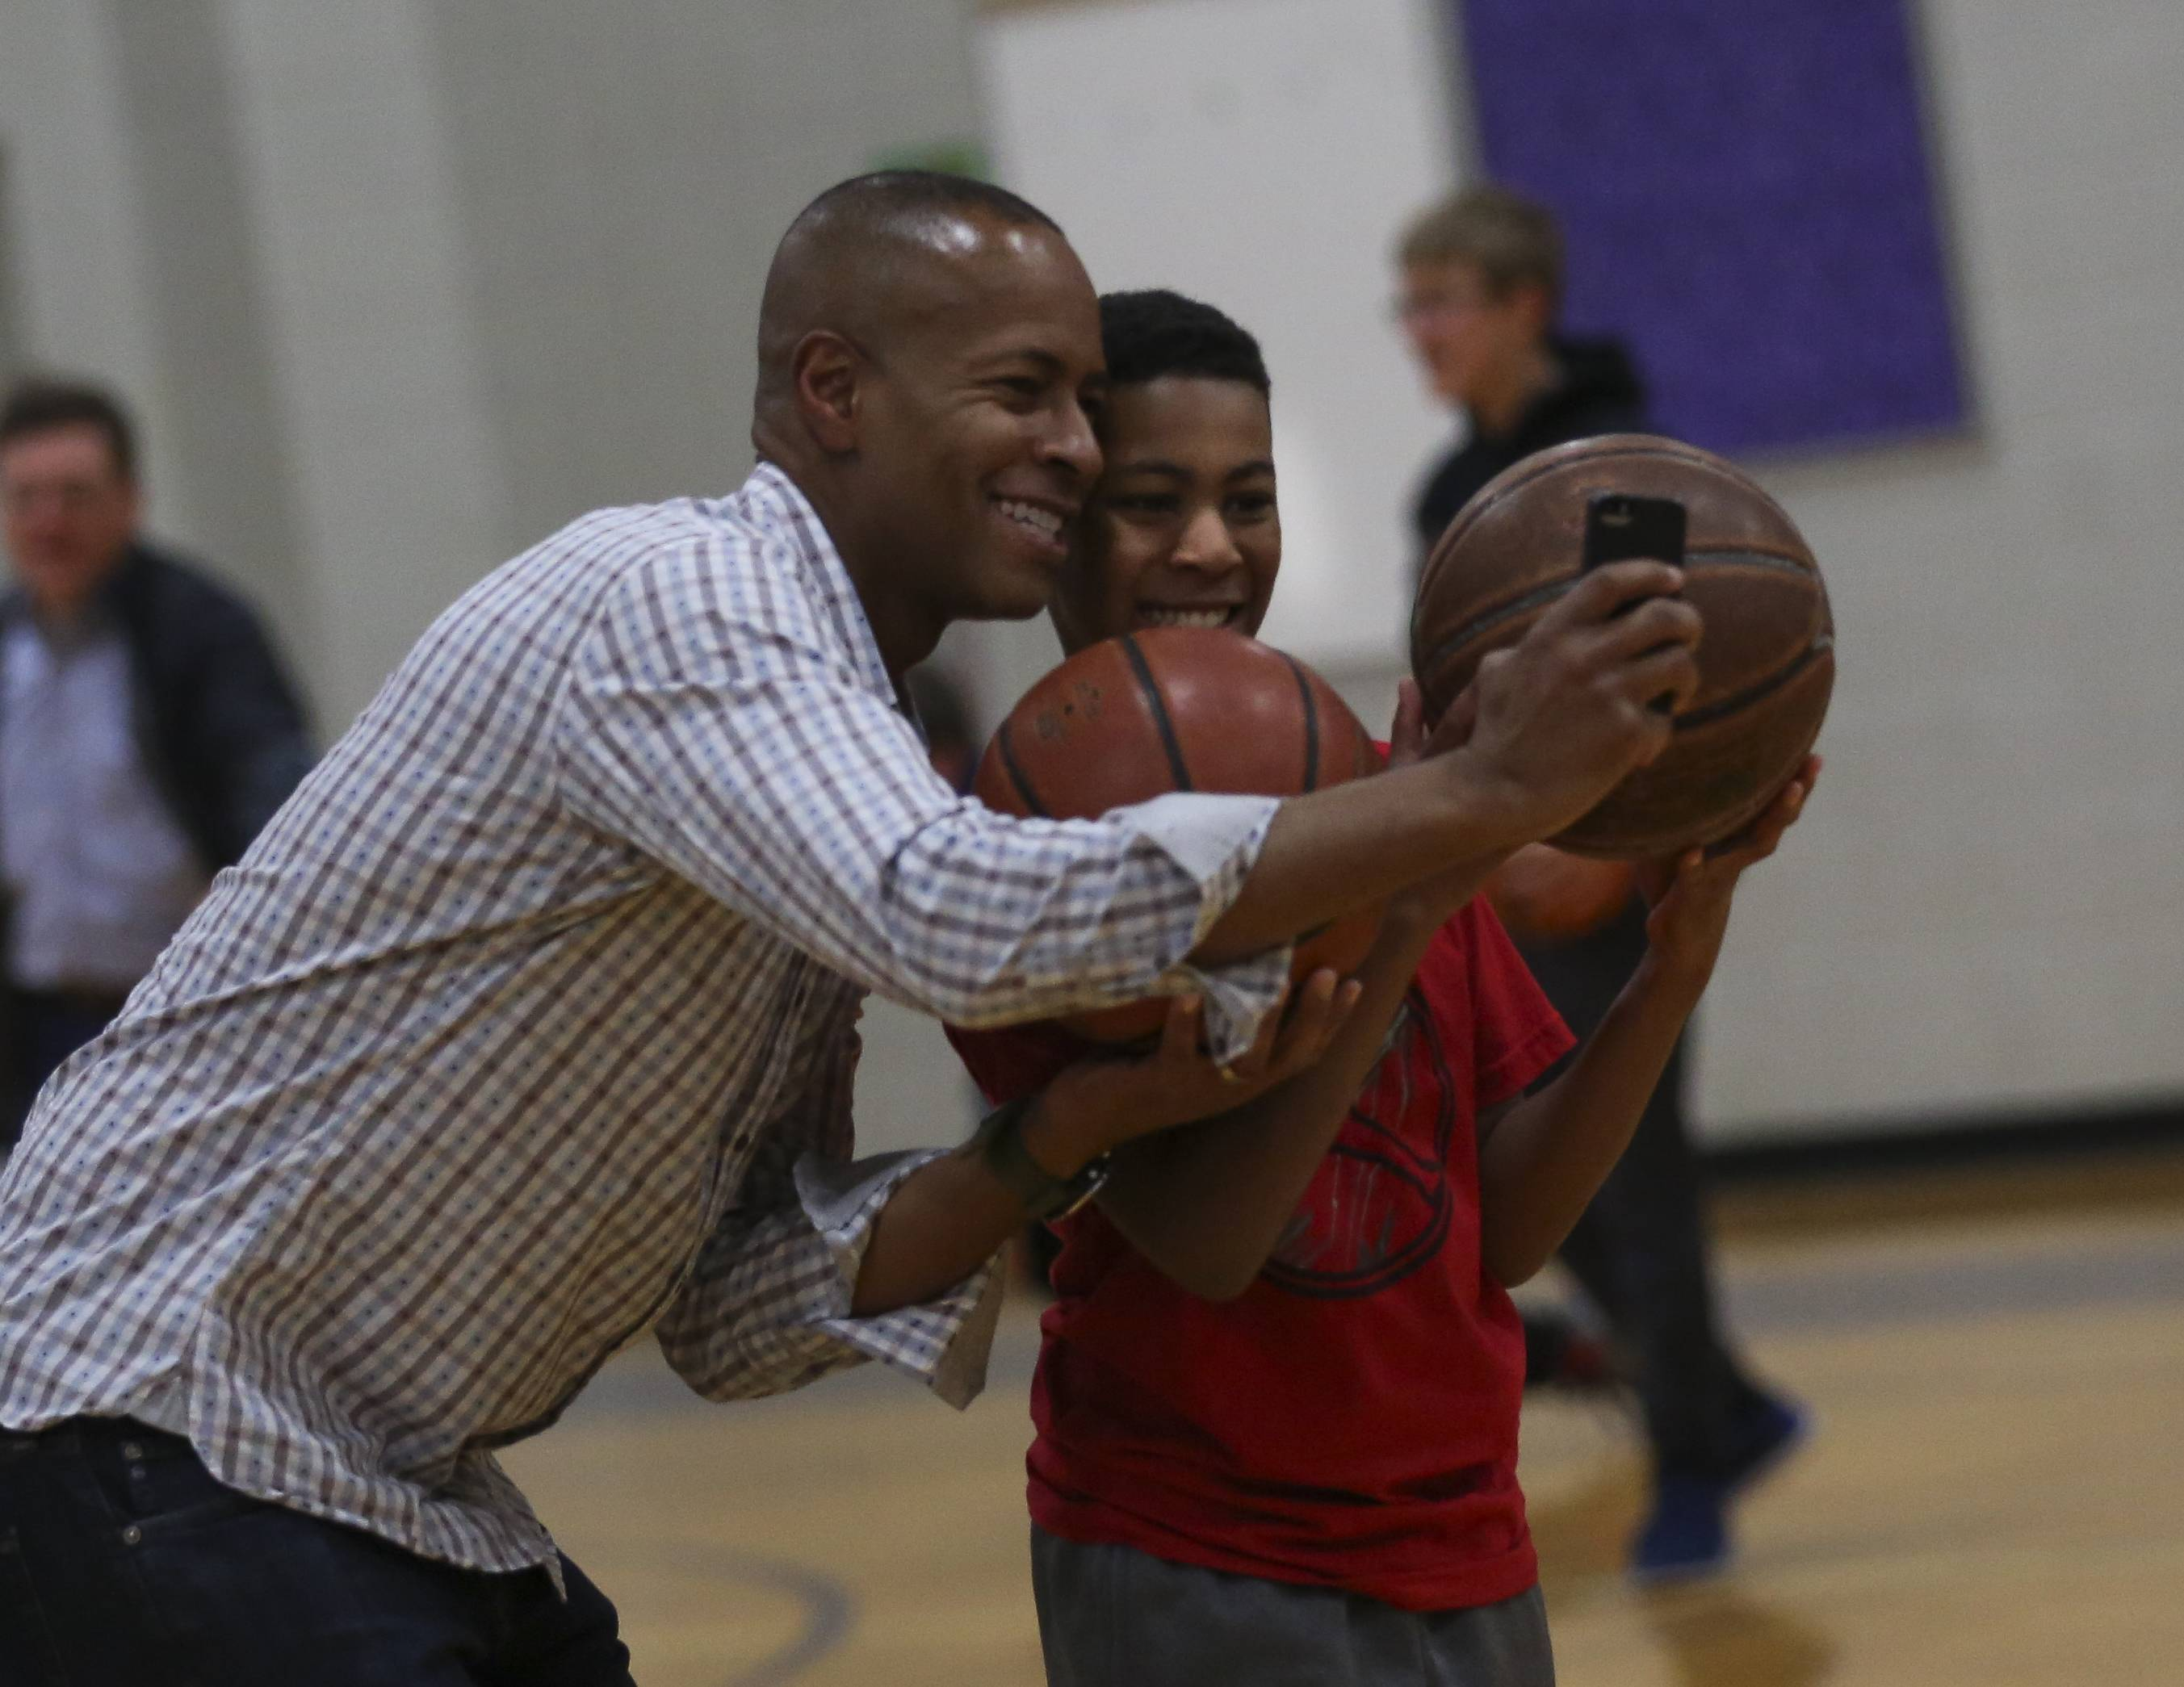 Mark Tucker and his sixth-grade son Jacob Porch-Tucker save a selfie while shooting hoops as part of the Books and Breakfast 4 Boys event at Crone Middle School in Naperville.